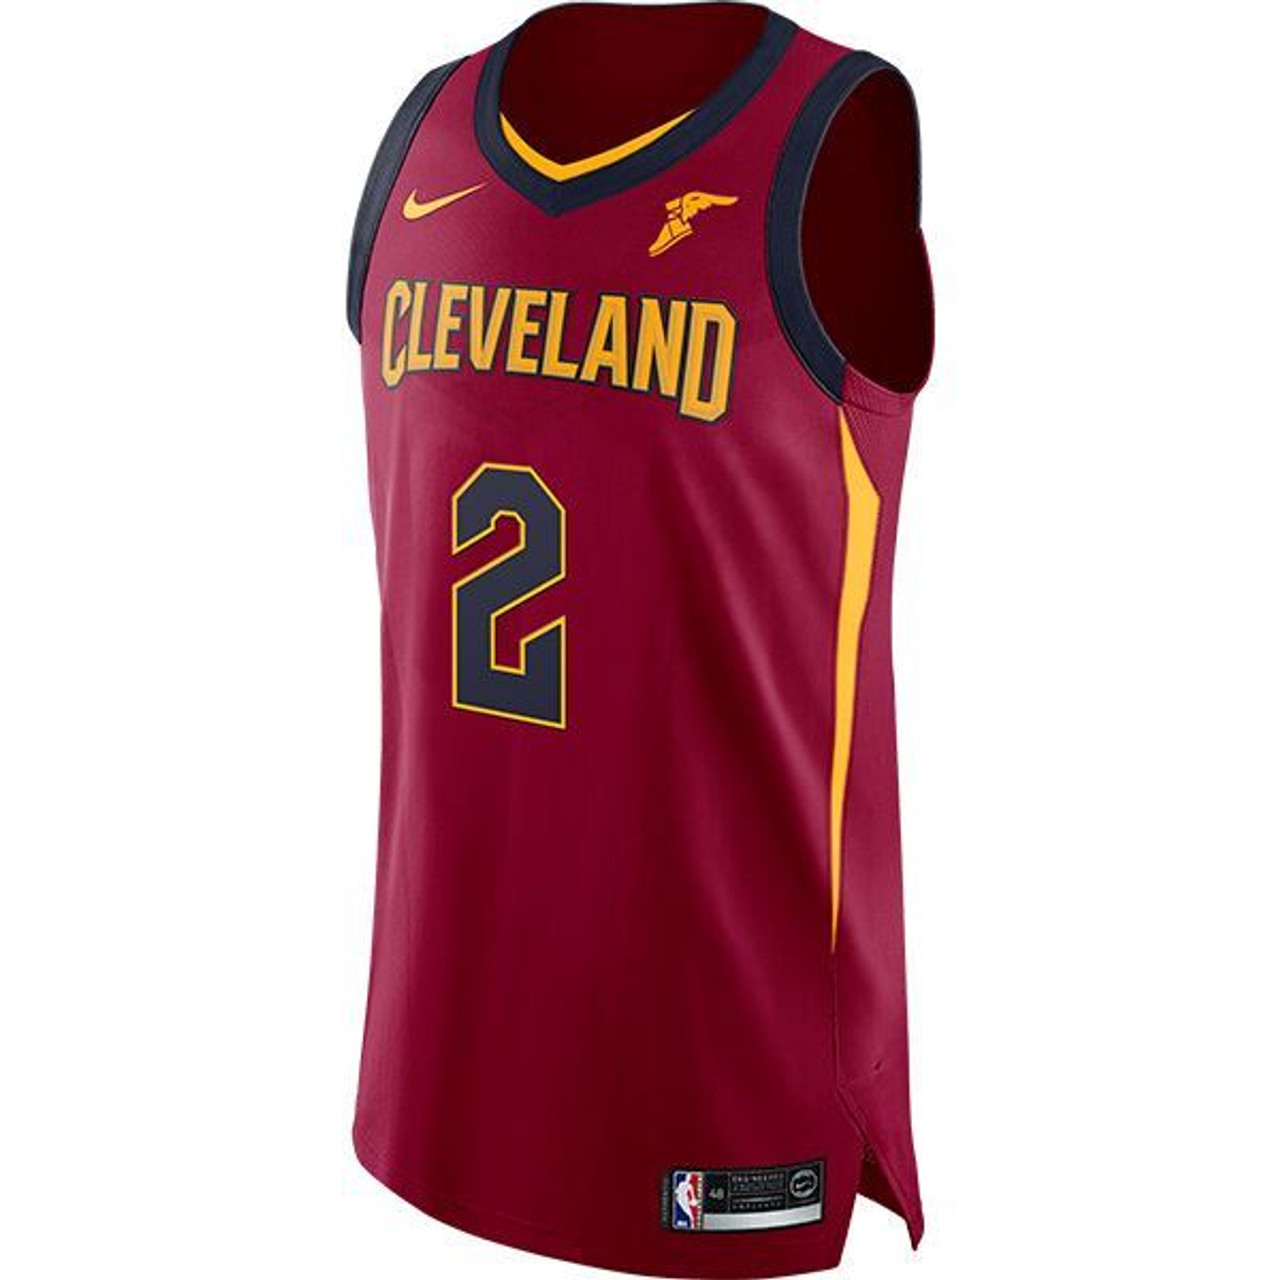 [WINE] Collin Sexton Authentic Jersey with Wingfoot